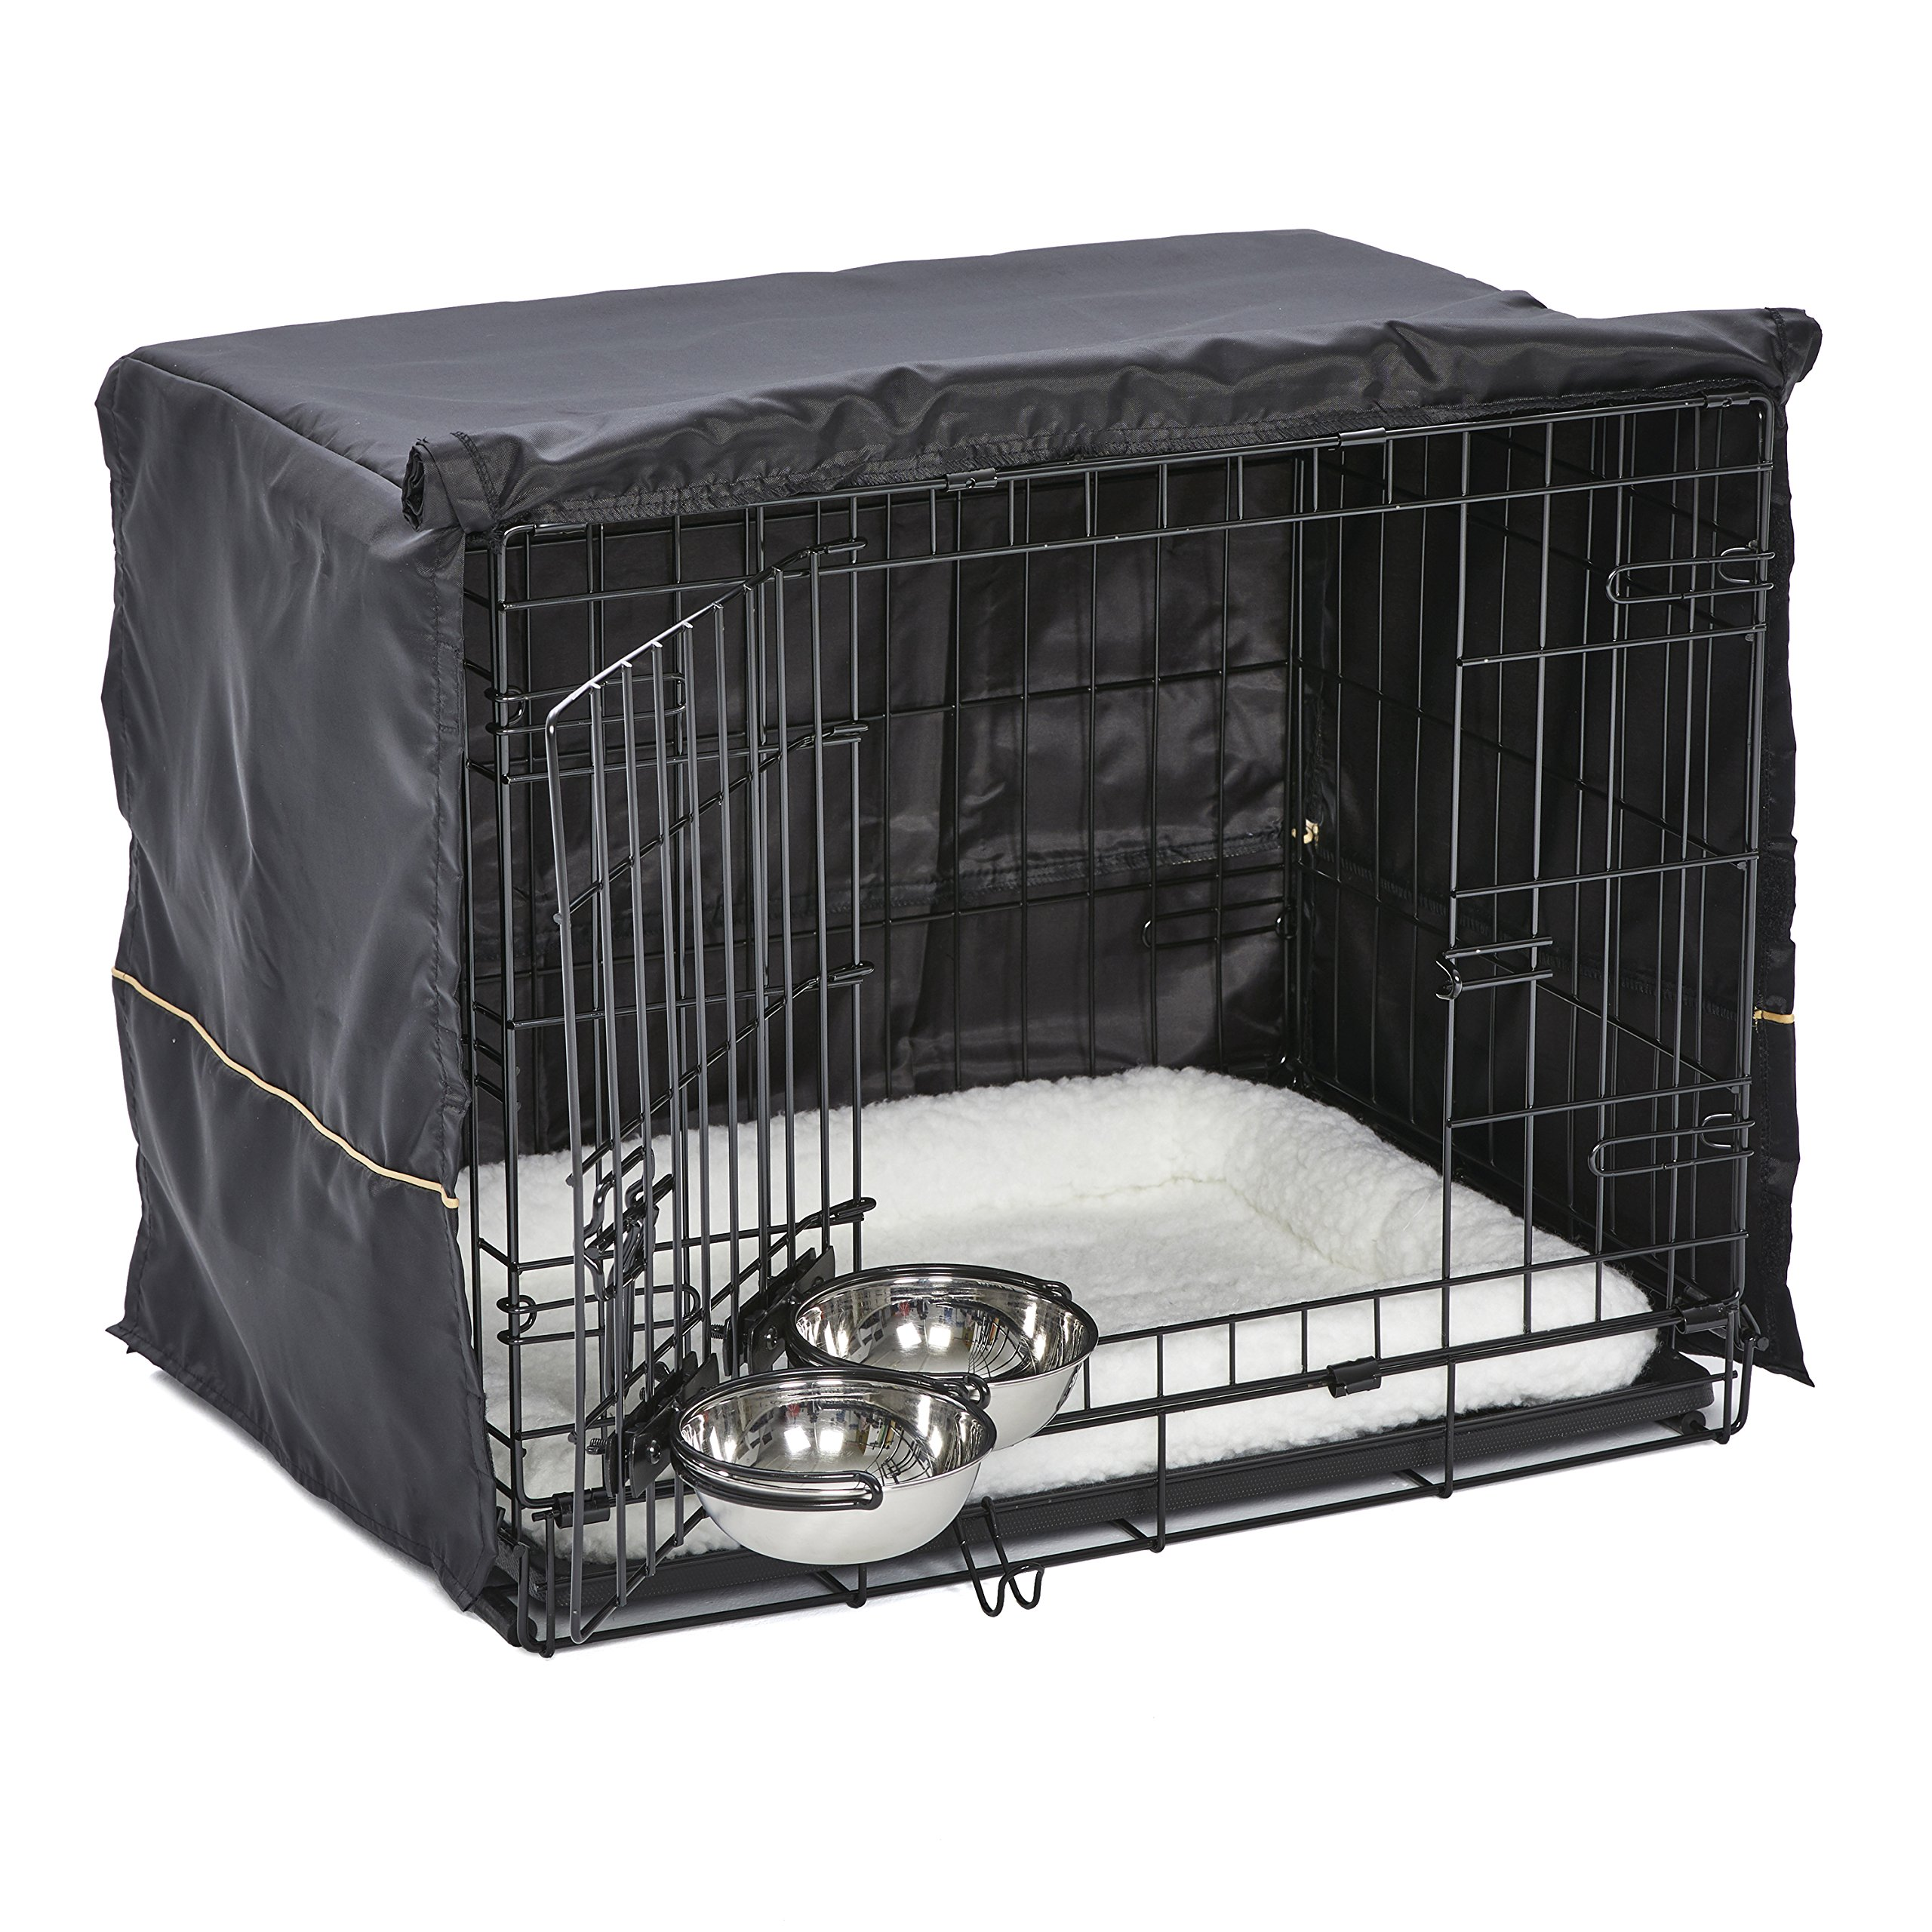 MidWest Homes for Pets Small Dog Crate Starter Kit | One 2-Door iCrate, Pet Bed, Crate Cover & 2 Pet Bowls | 24-Inch Ideal for Small Dog Breeds by MidWest Homes for Pets (Image #4)